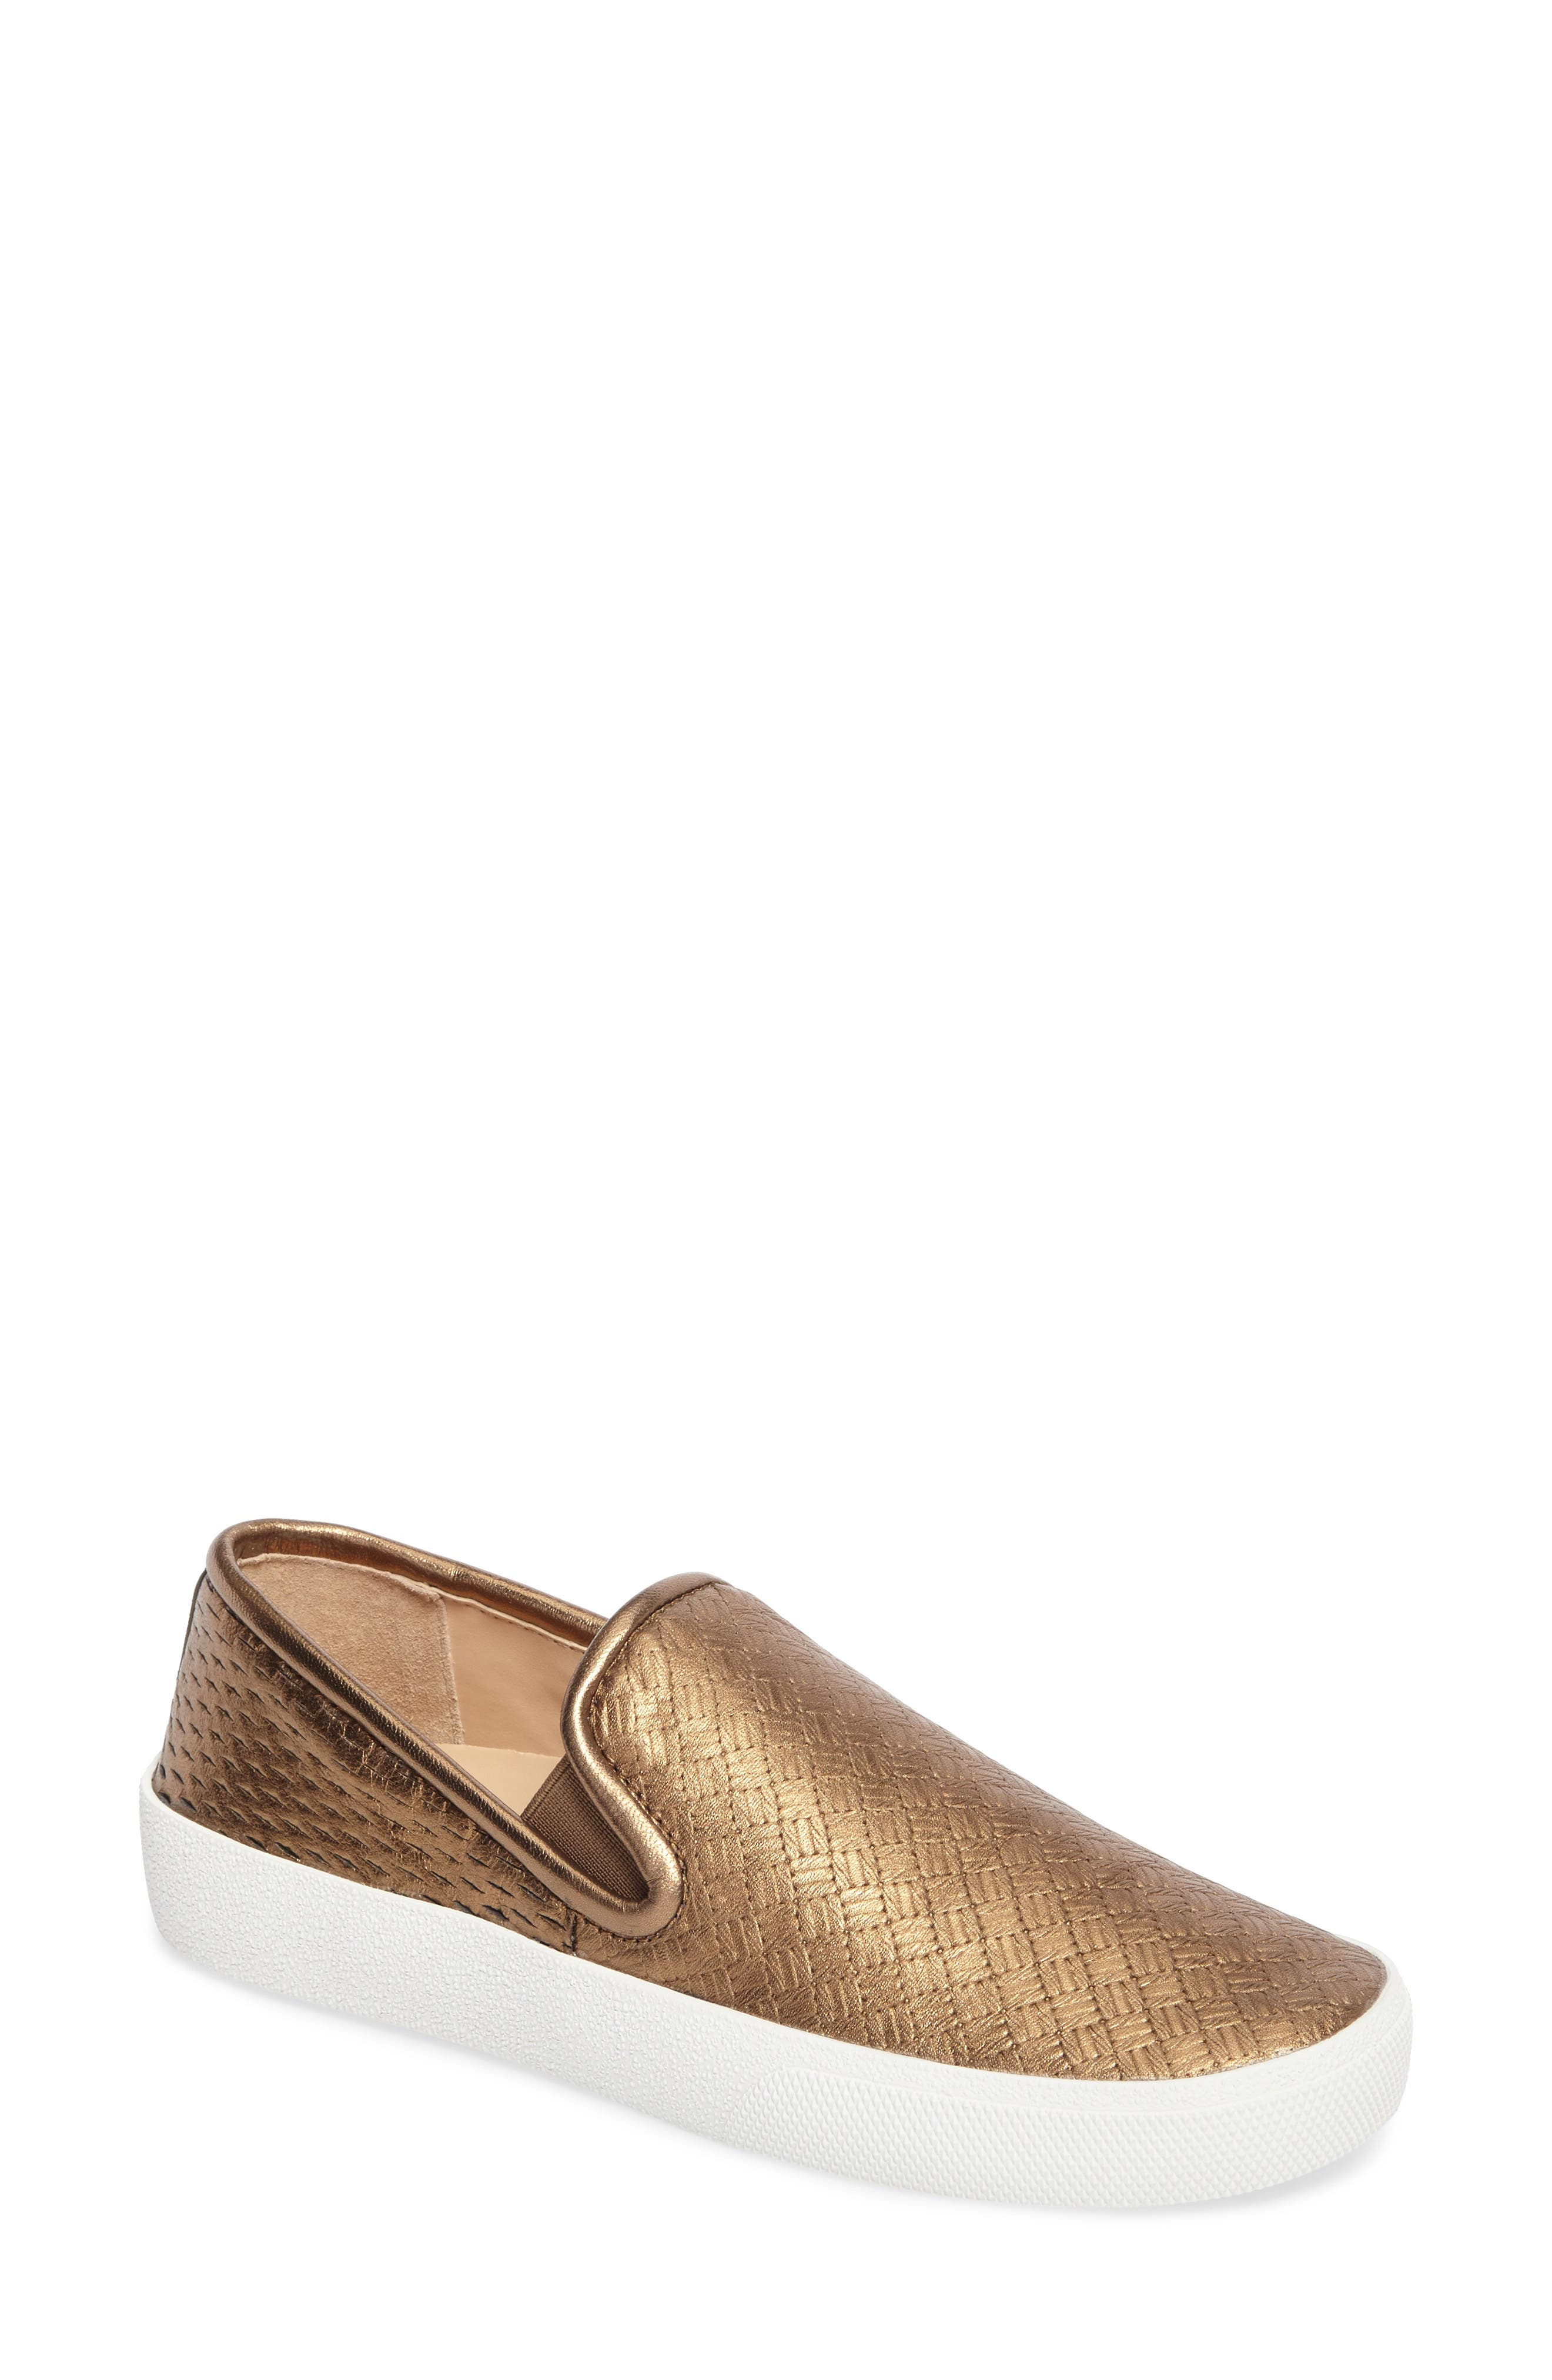 Alternate Image 1 Selected - Vince Camuto Cariana Slip-On Sneaker (Women)